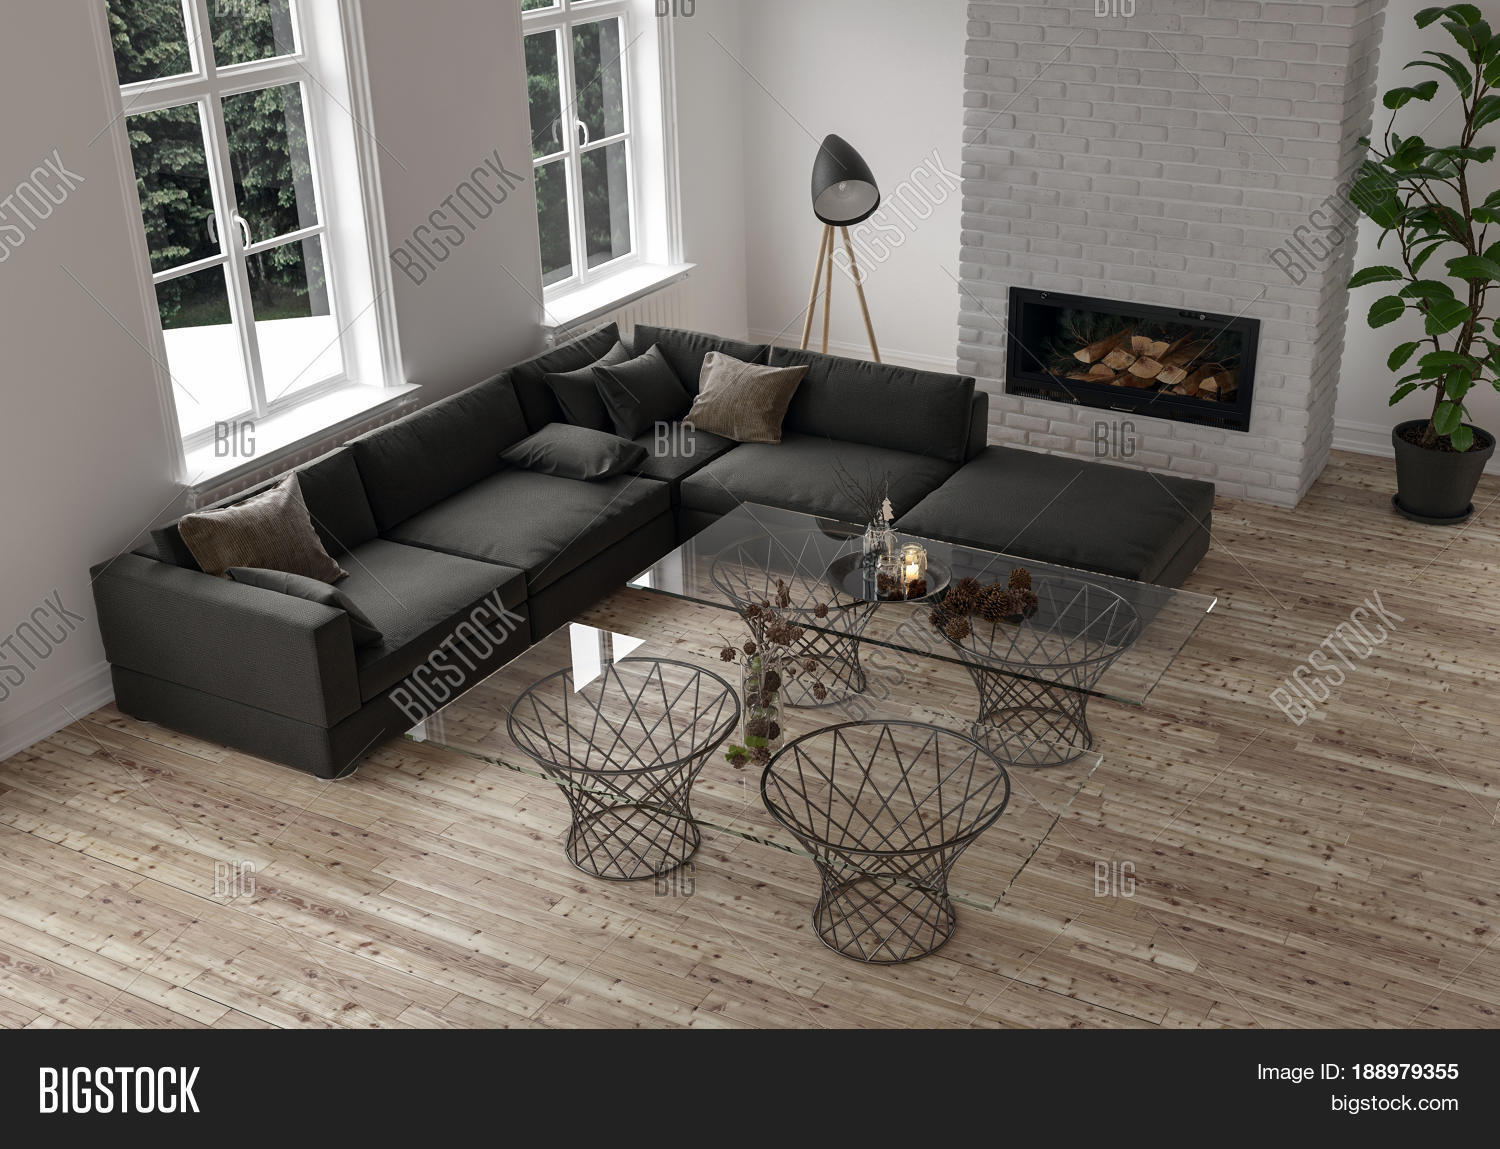 Minimalist decor modern living room image photo bigstock for 500 decoration details minimalism